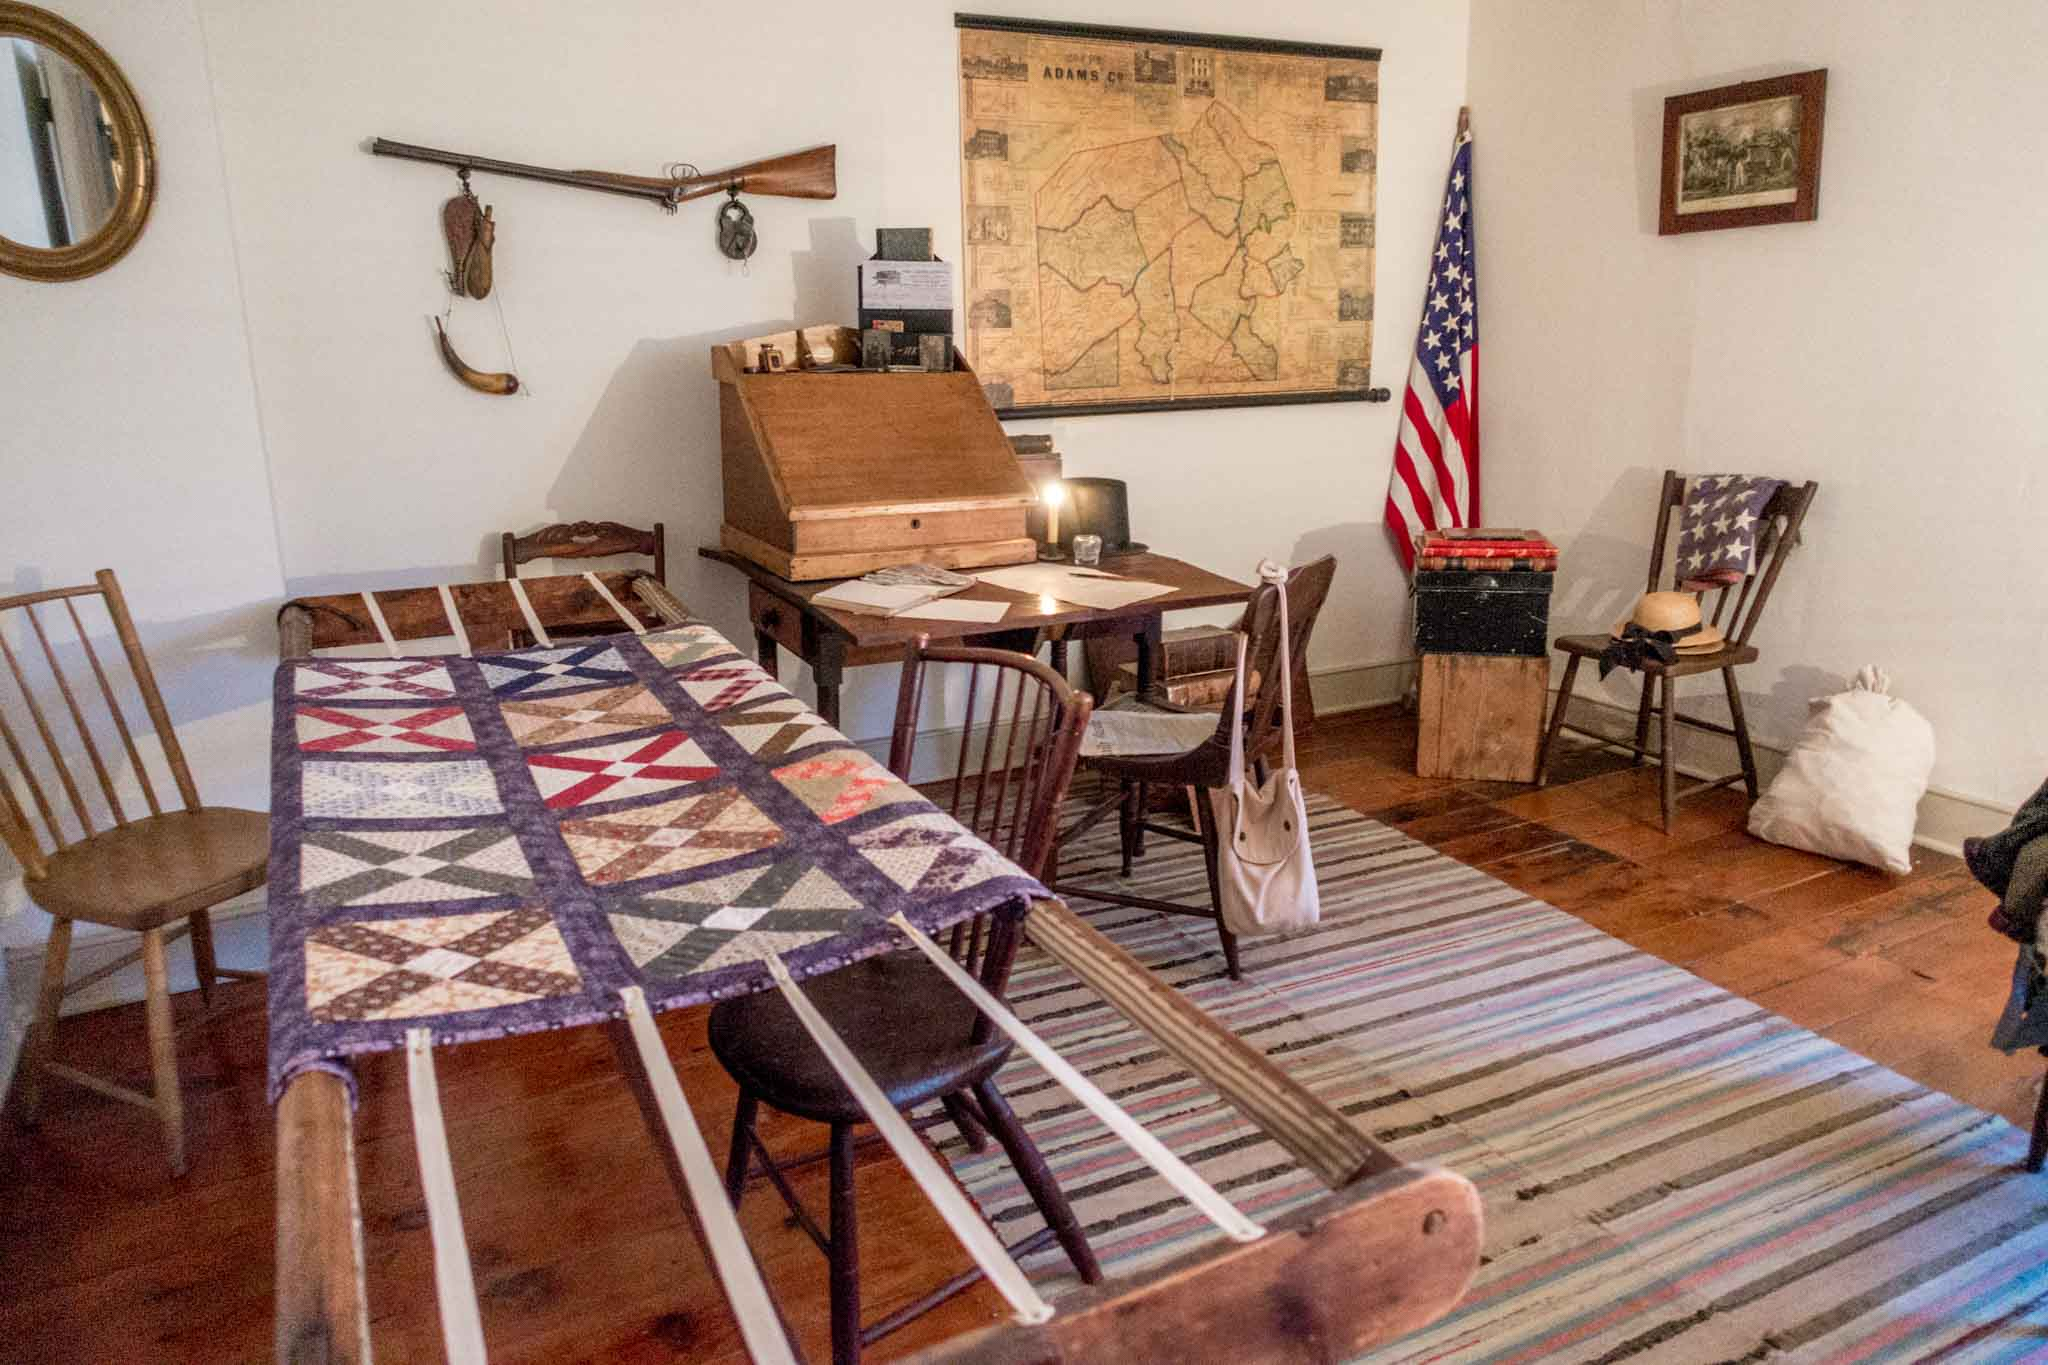 Civil War-era quilting room containing a desk and map at the Shriver House Museum, one of the interesting historical attractions in Gettysburg PA